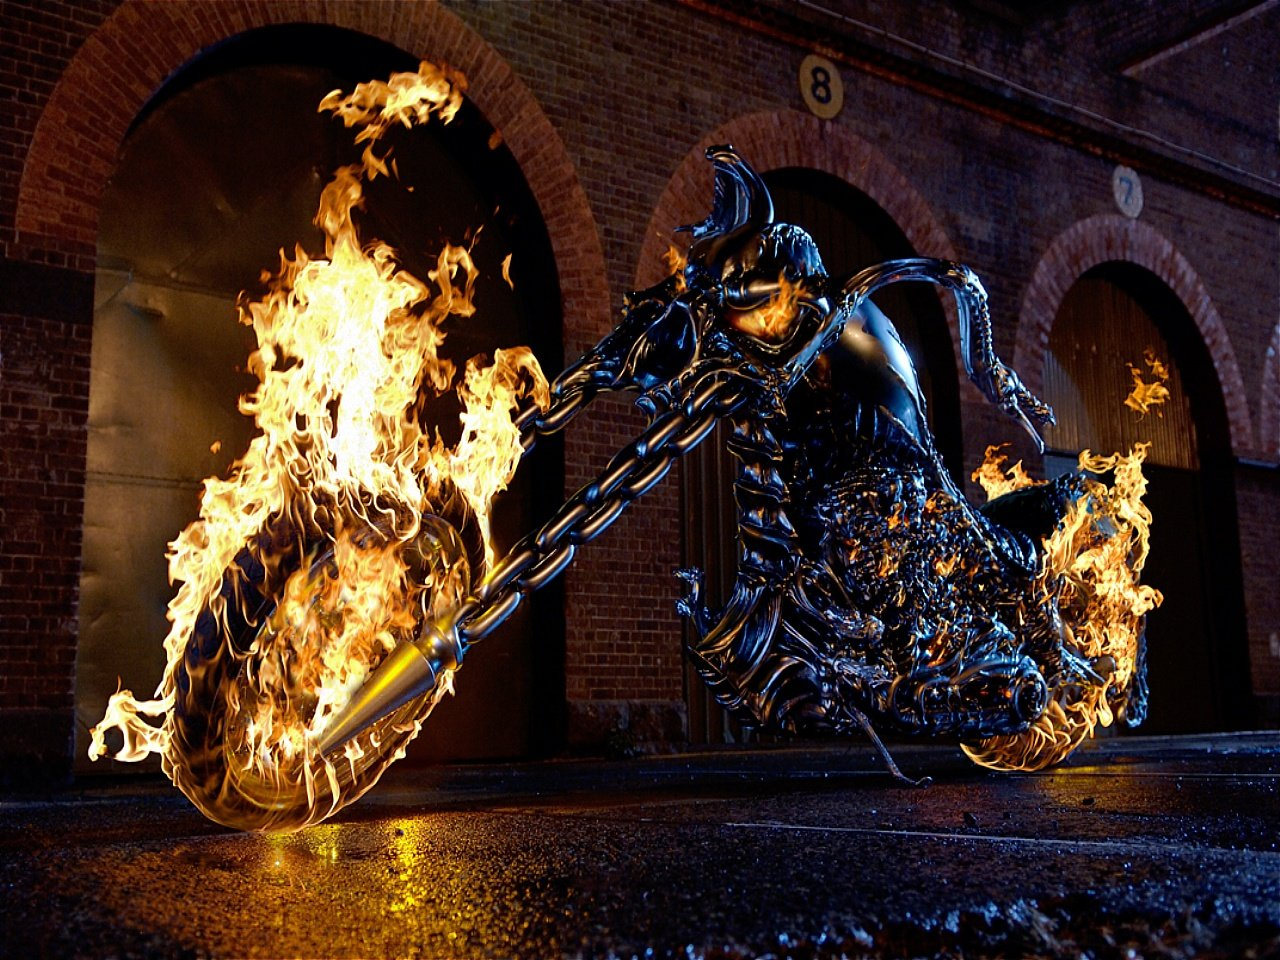 Download Ghost Rider 2 Wallpapers Pictures Photos and Backgrounds 1280x960